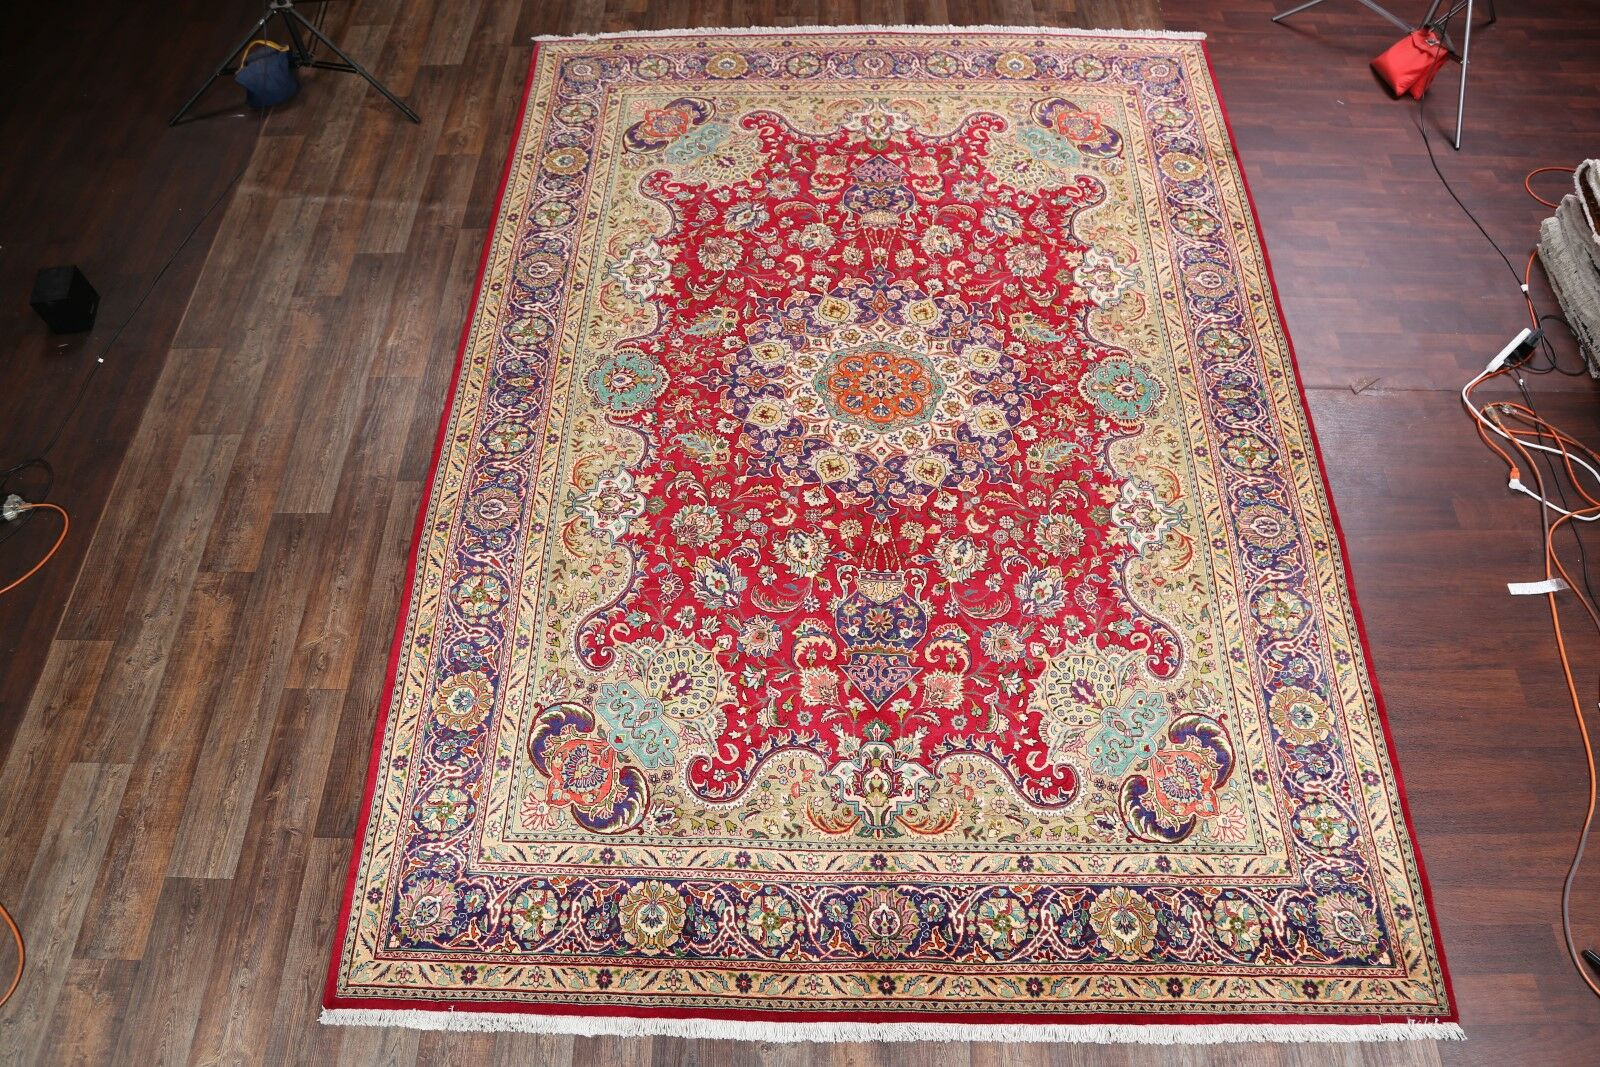 One-of-a-Kind Tabriz Traditional Persian Hand-Knotted 9'1